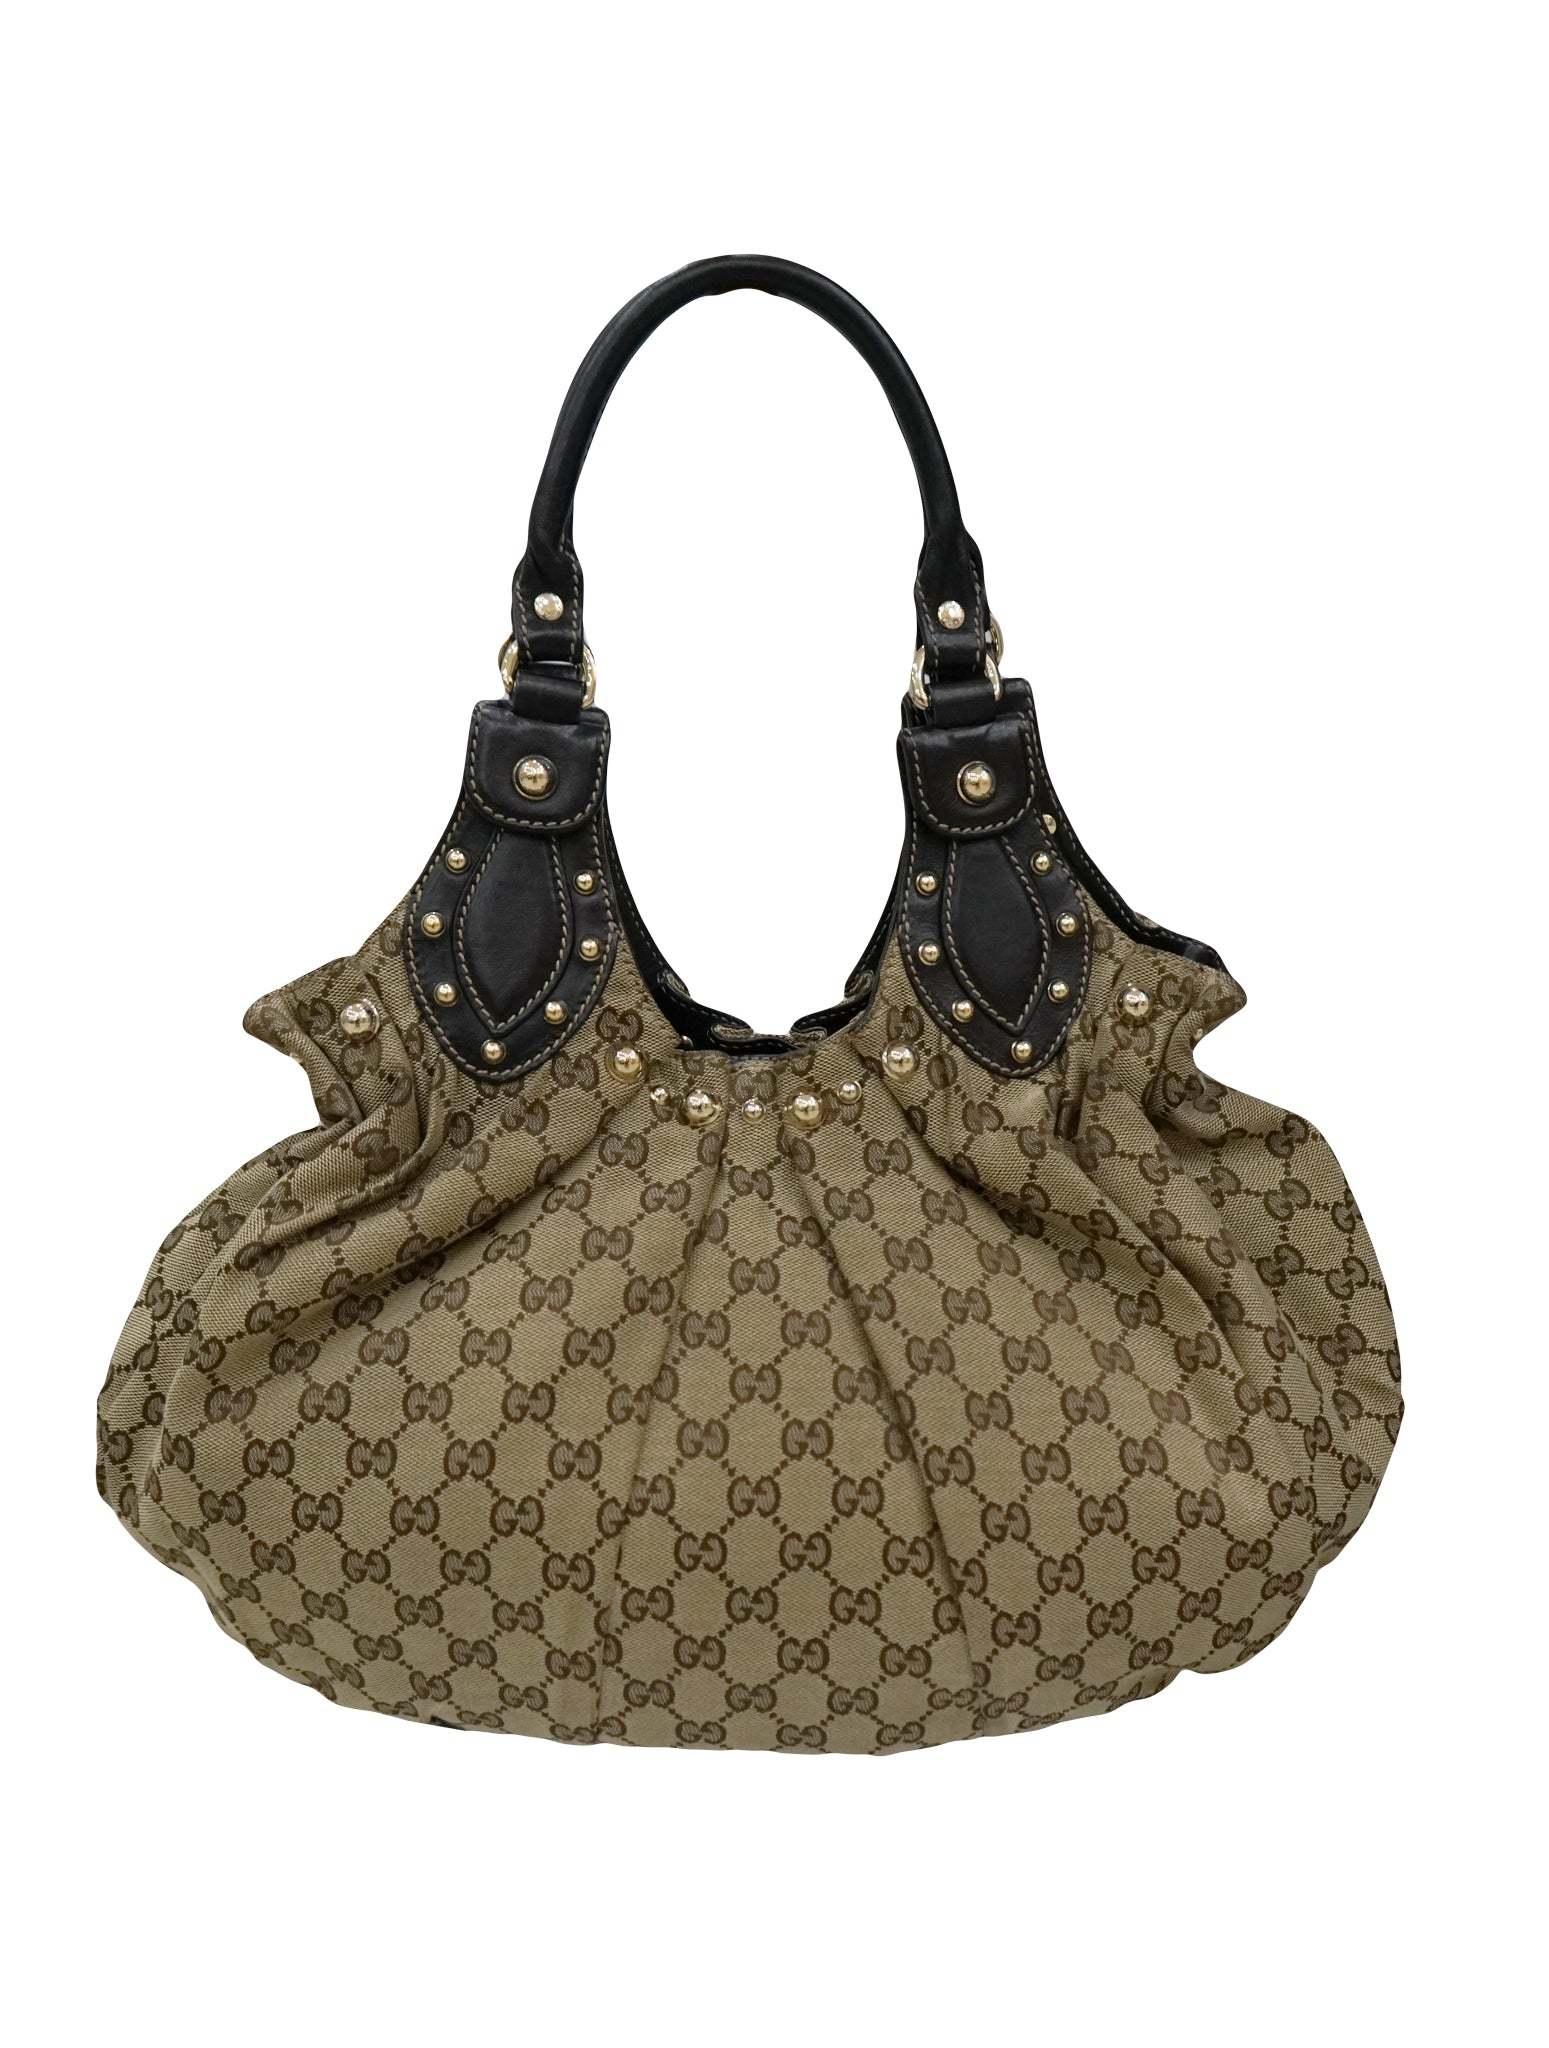 345955eea3f0 GUCCI STUDDED GG CANVAS PELHAM SHOULDER BAG – Kidsstyleforless